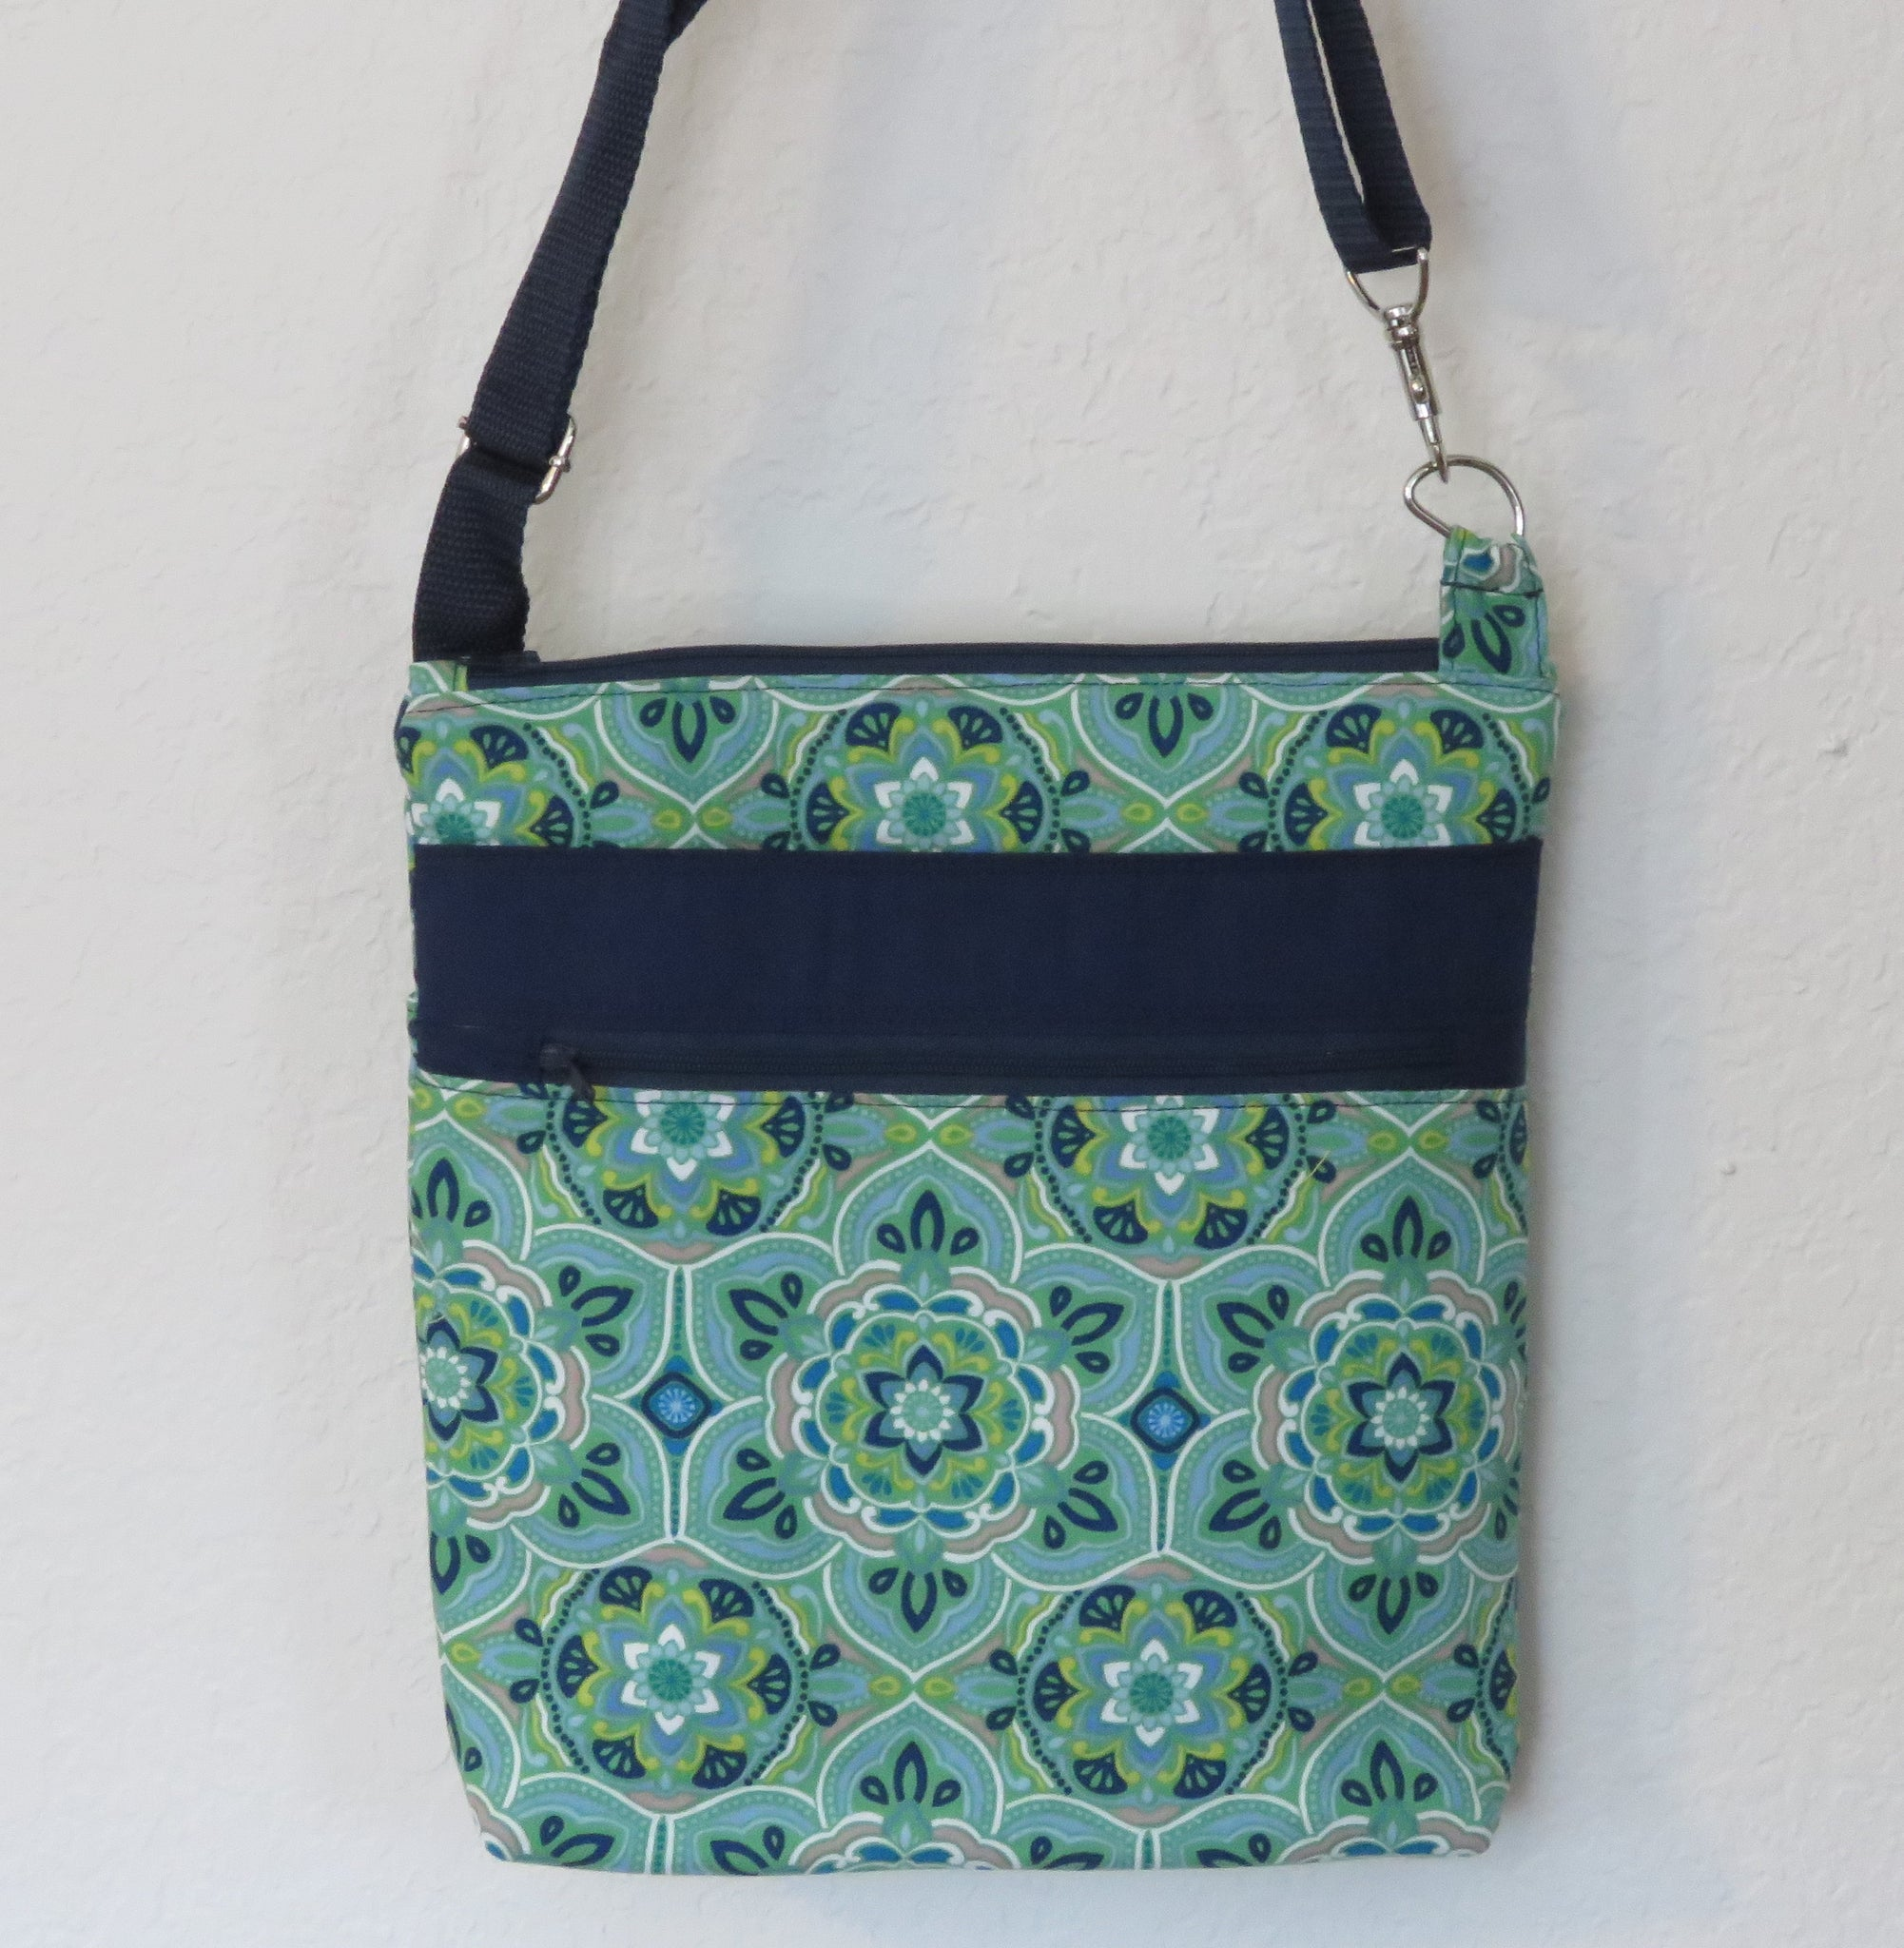 Crossbody Purse with Adjustable Strap - Green Floral/Geo